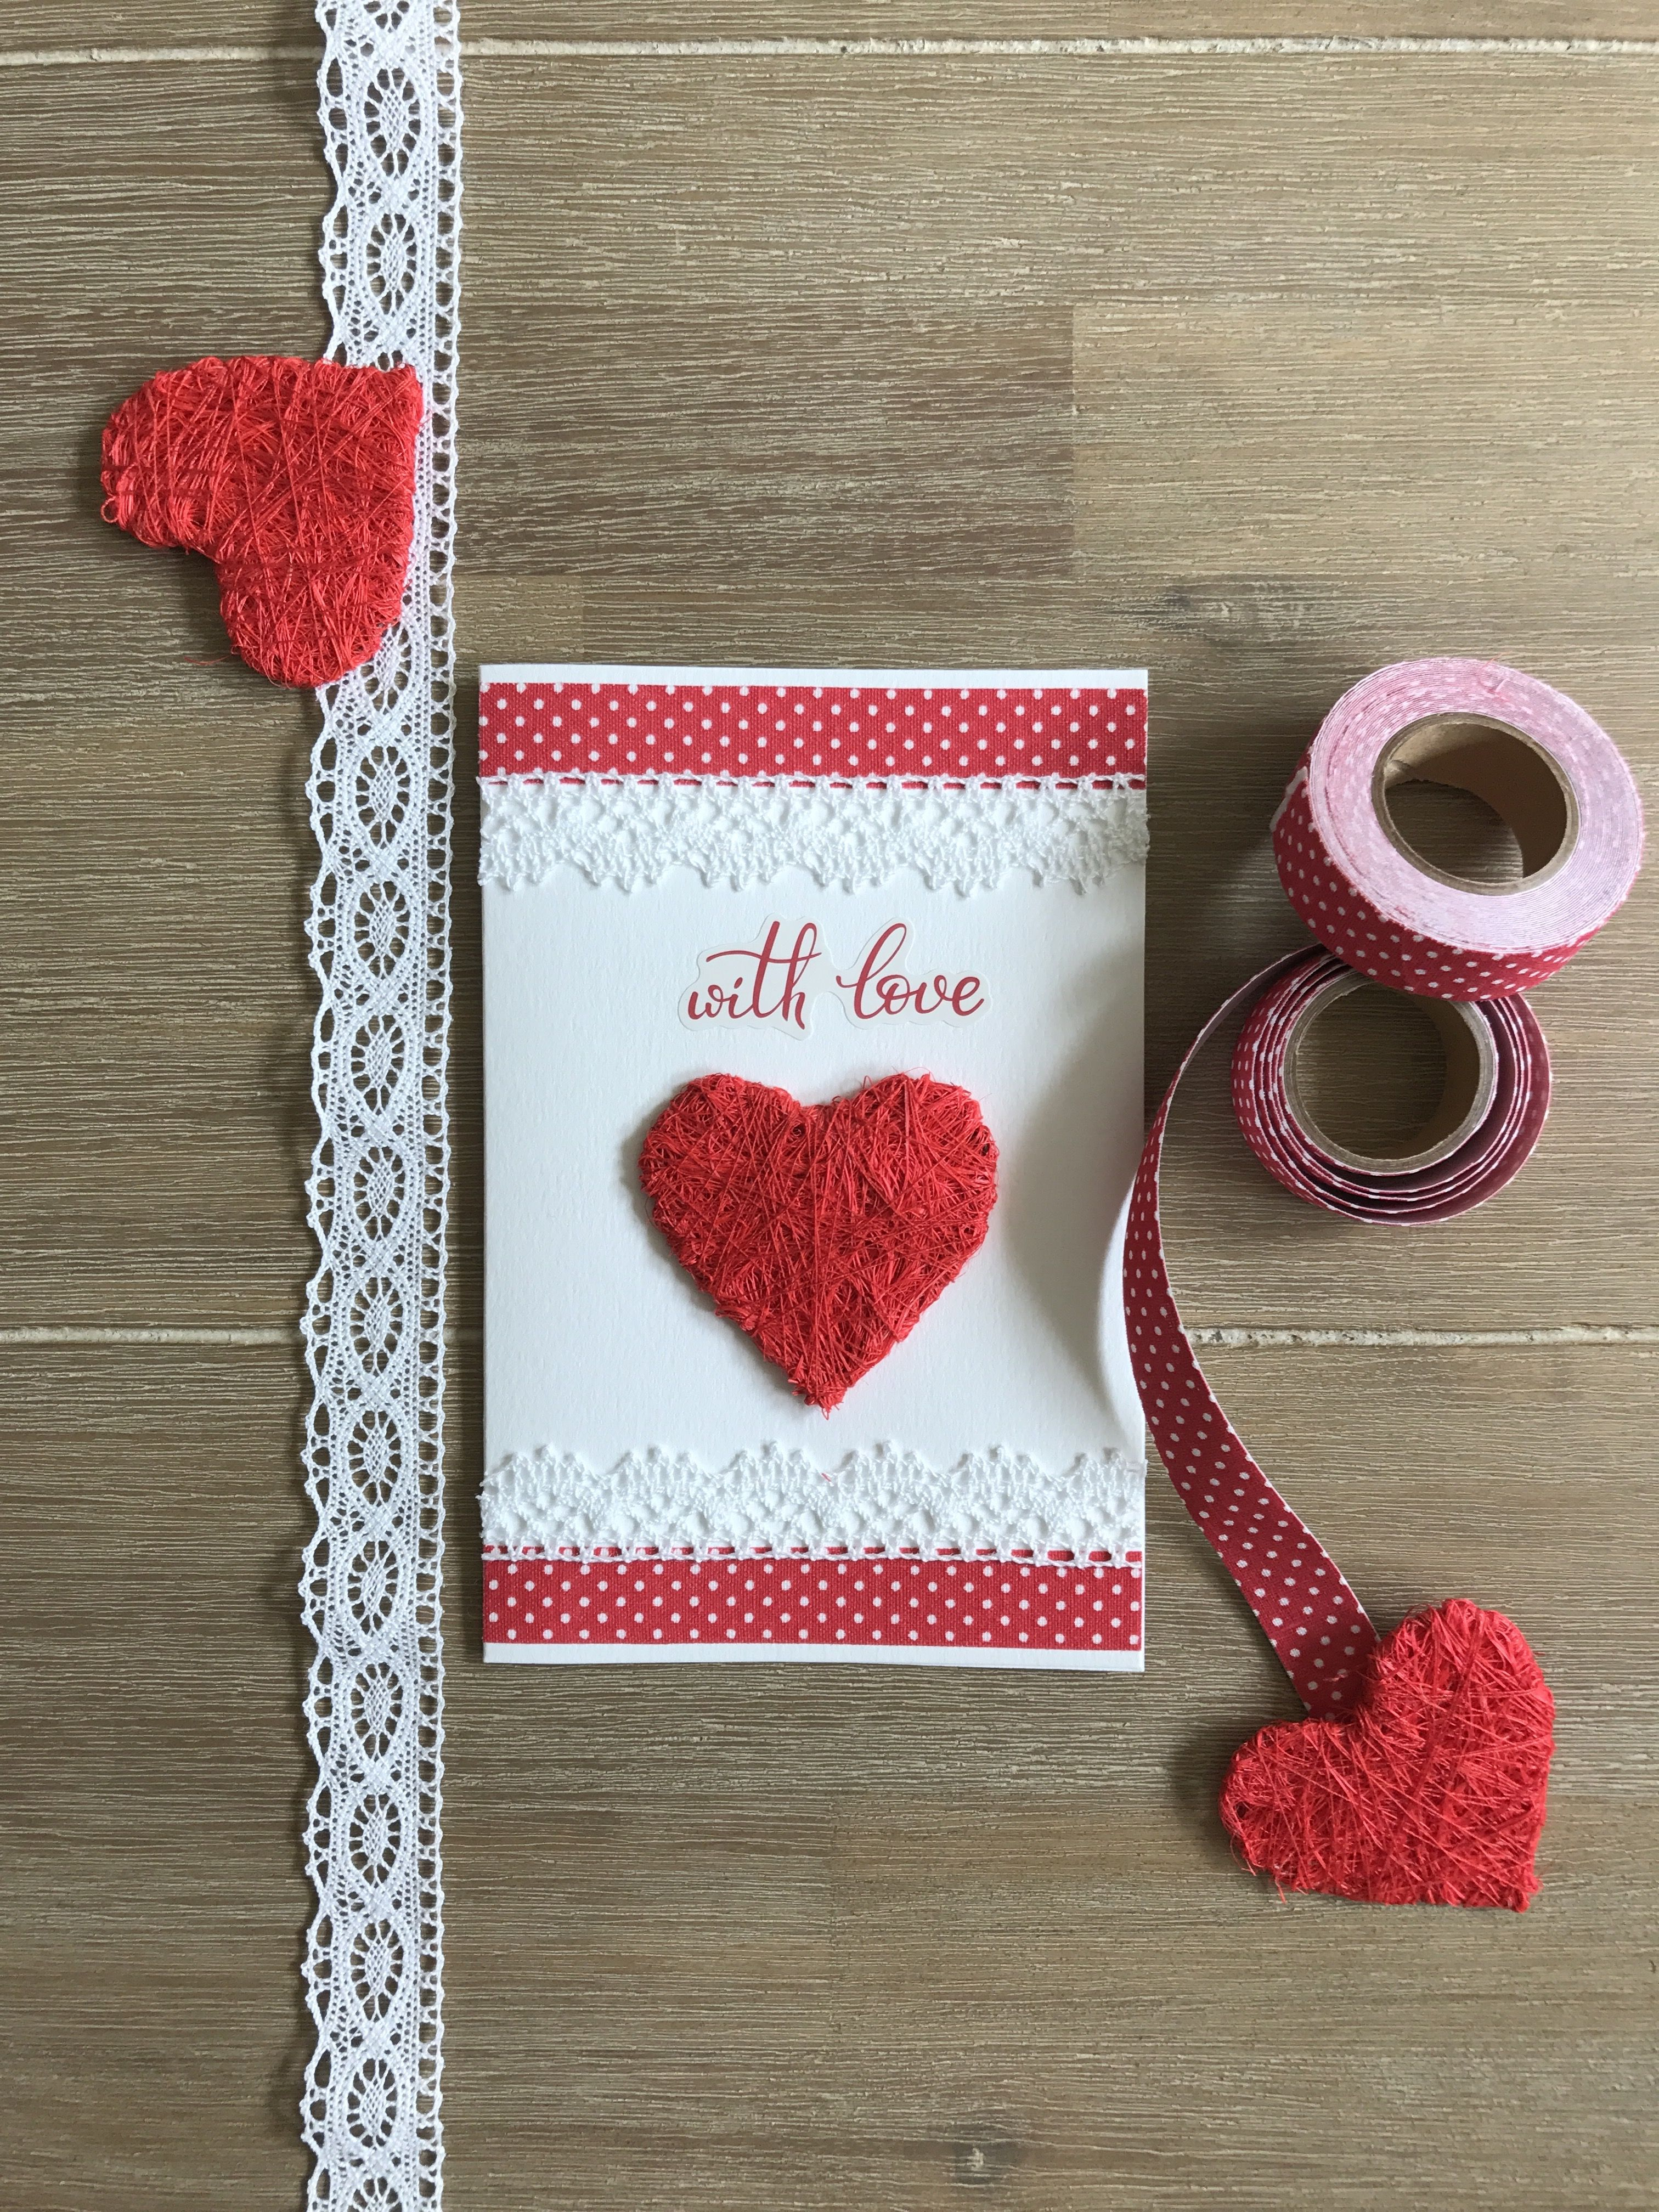 Gift for Girlfriend,Valentine\u2019s Day quilled card,Valentines cards,Cute Love Card,Romantic Anniversary Gift,I love you quilling card,Gift